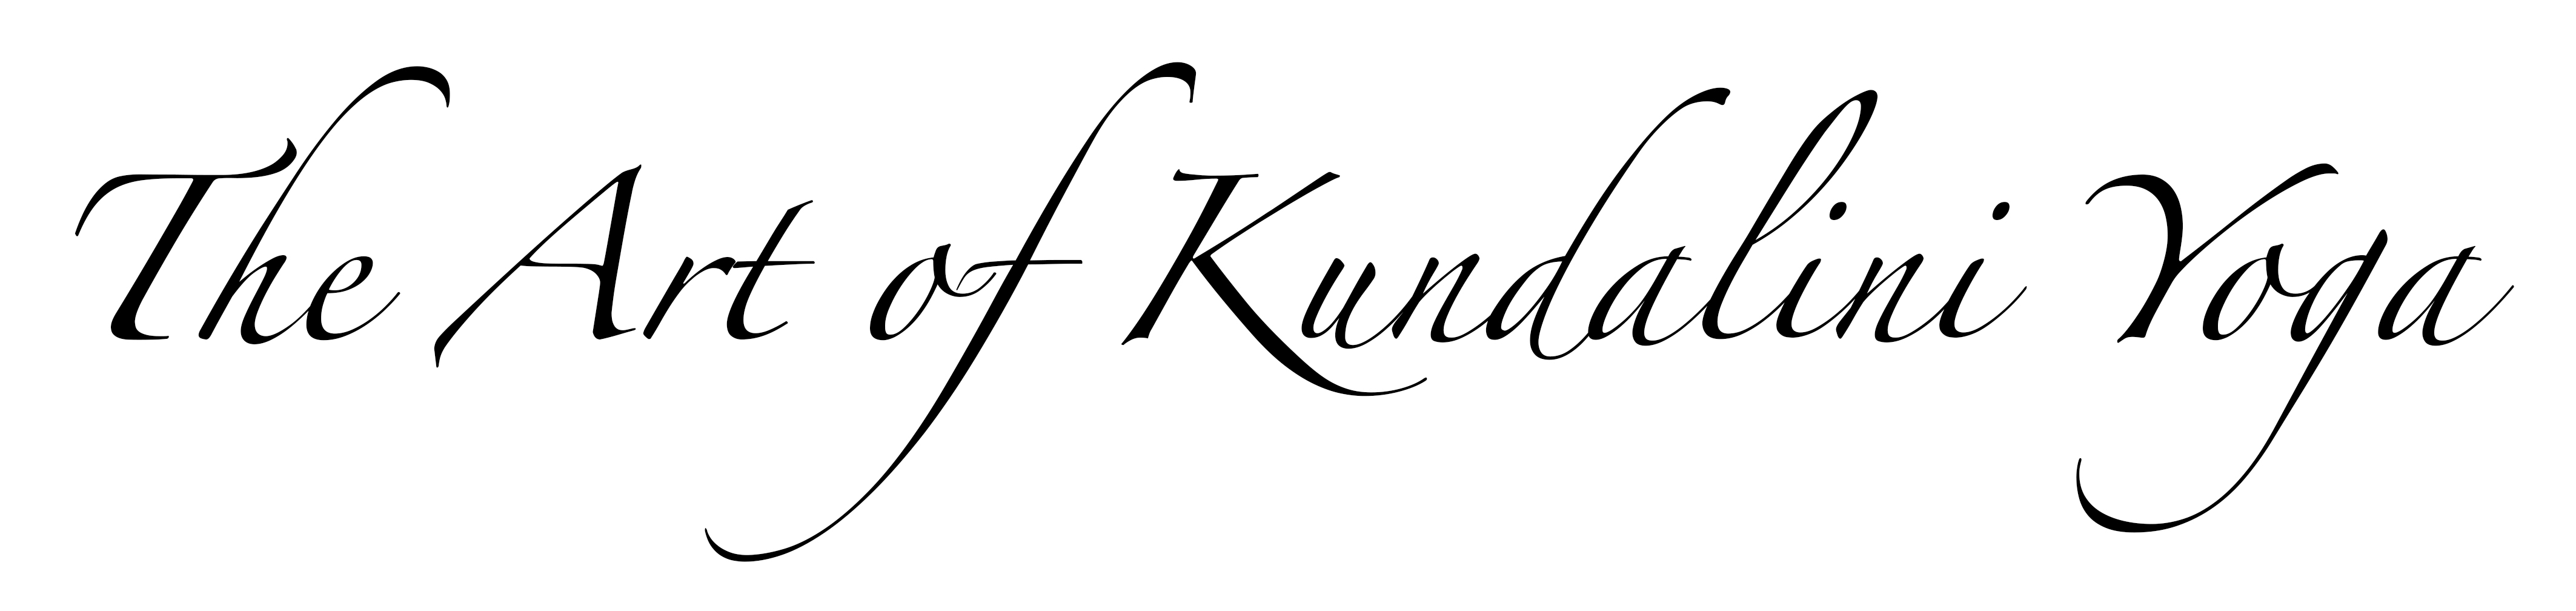 The Art of Kundalini Yoga logo